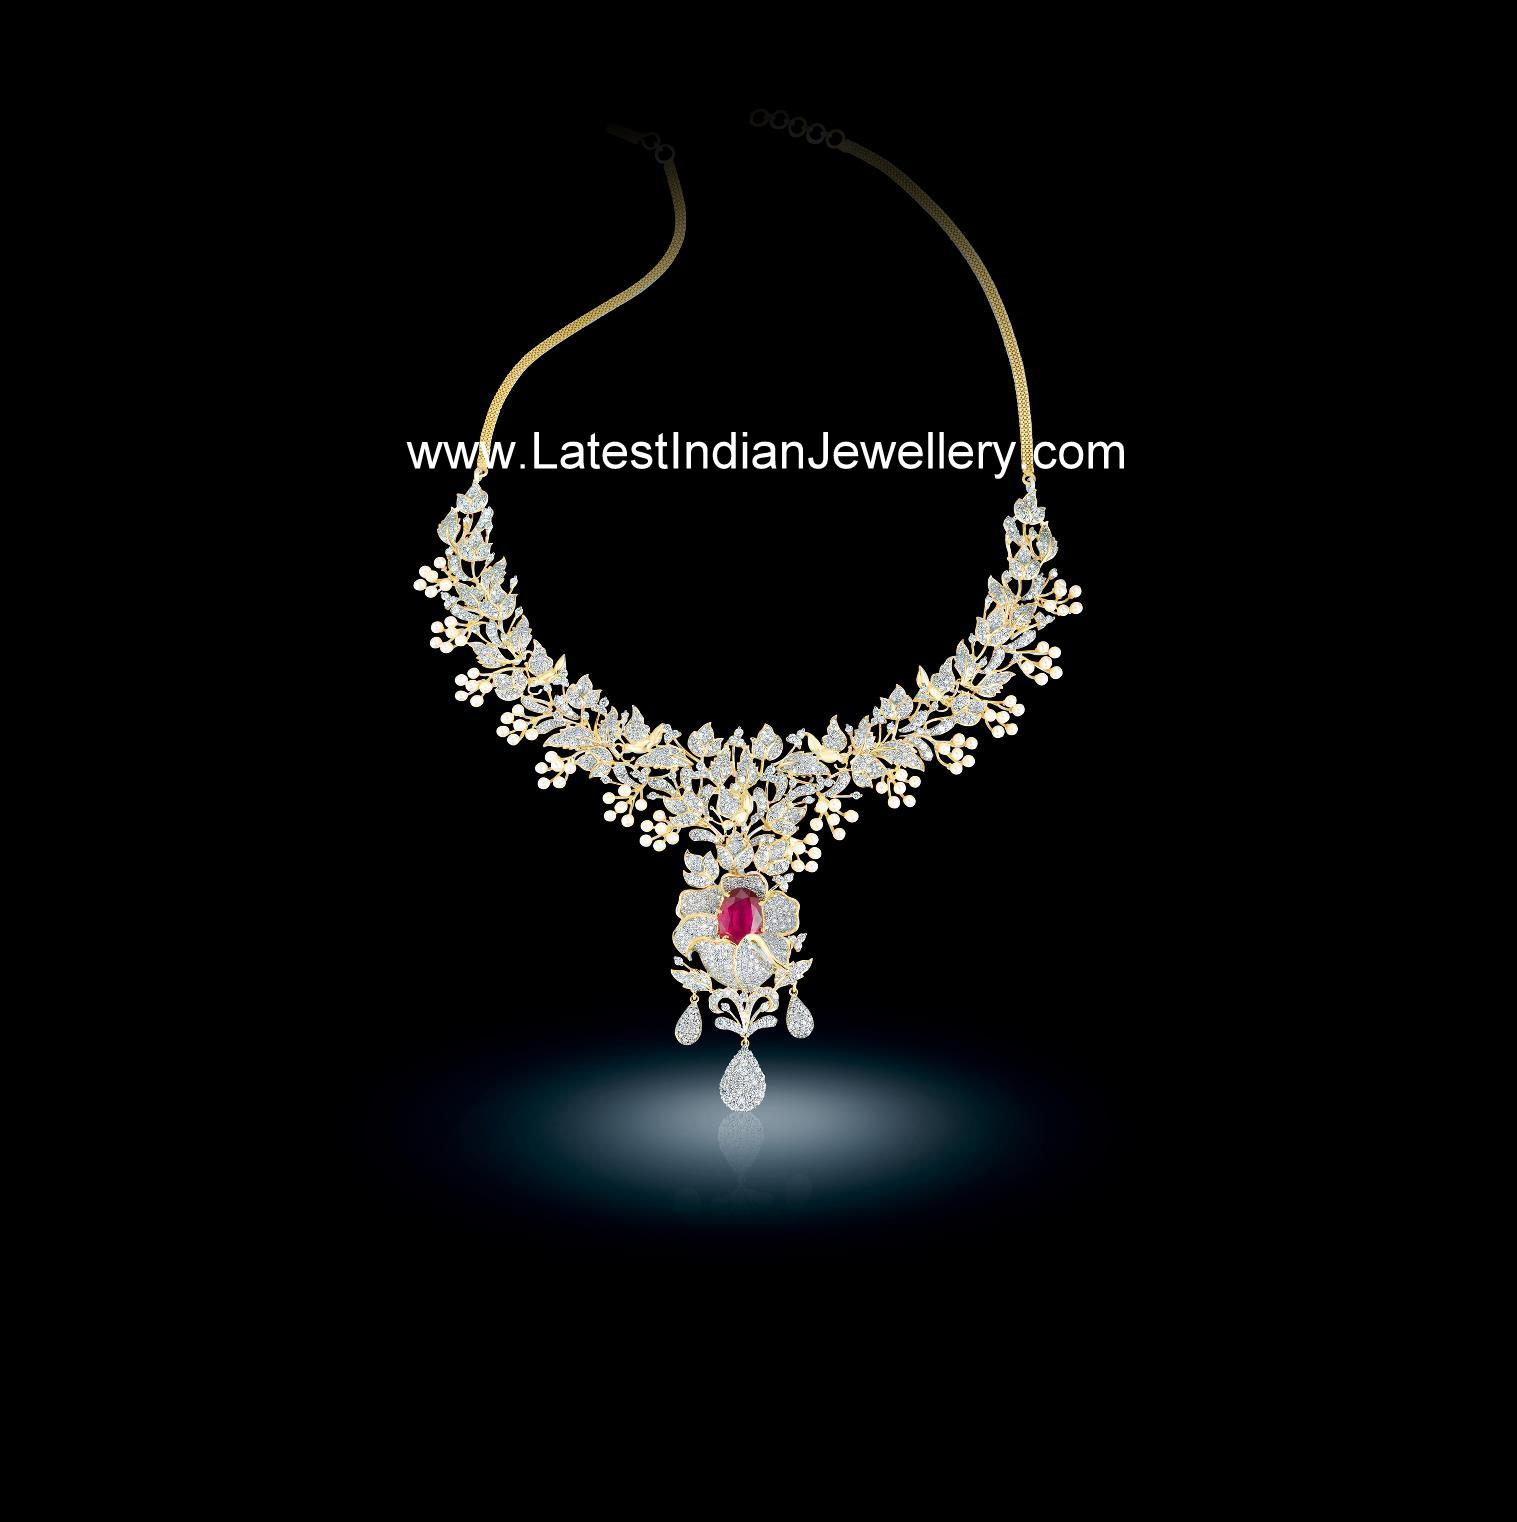 Diamond Necklaces From Bhima Jewellers